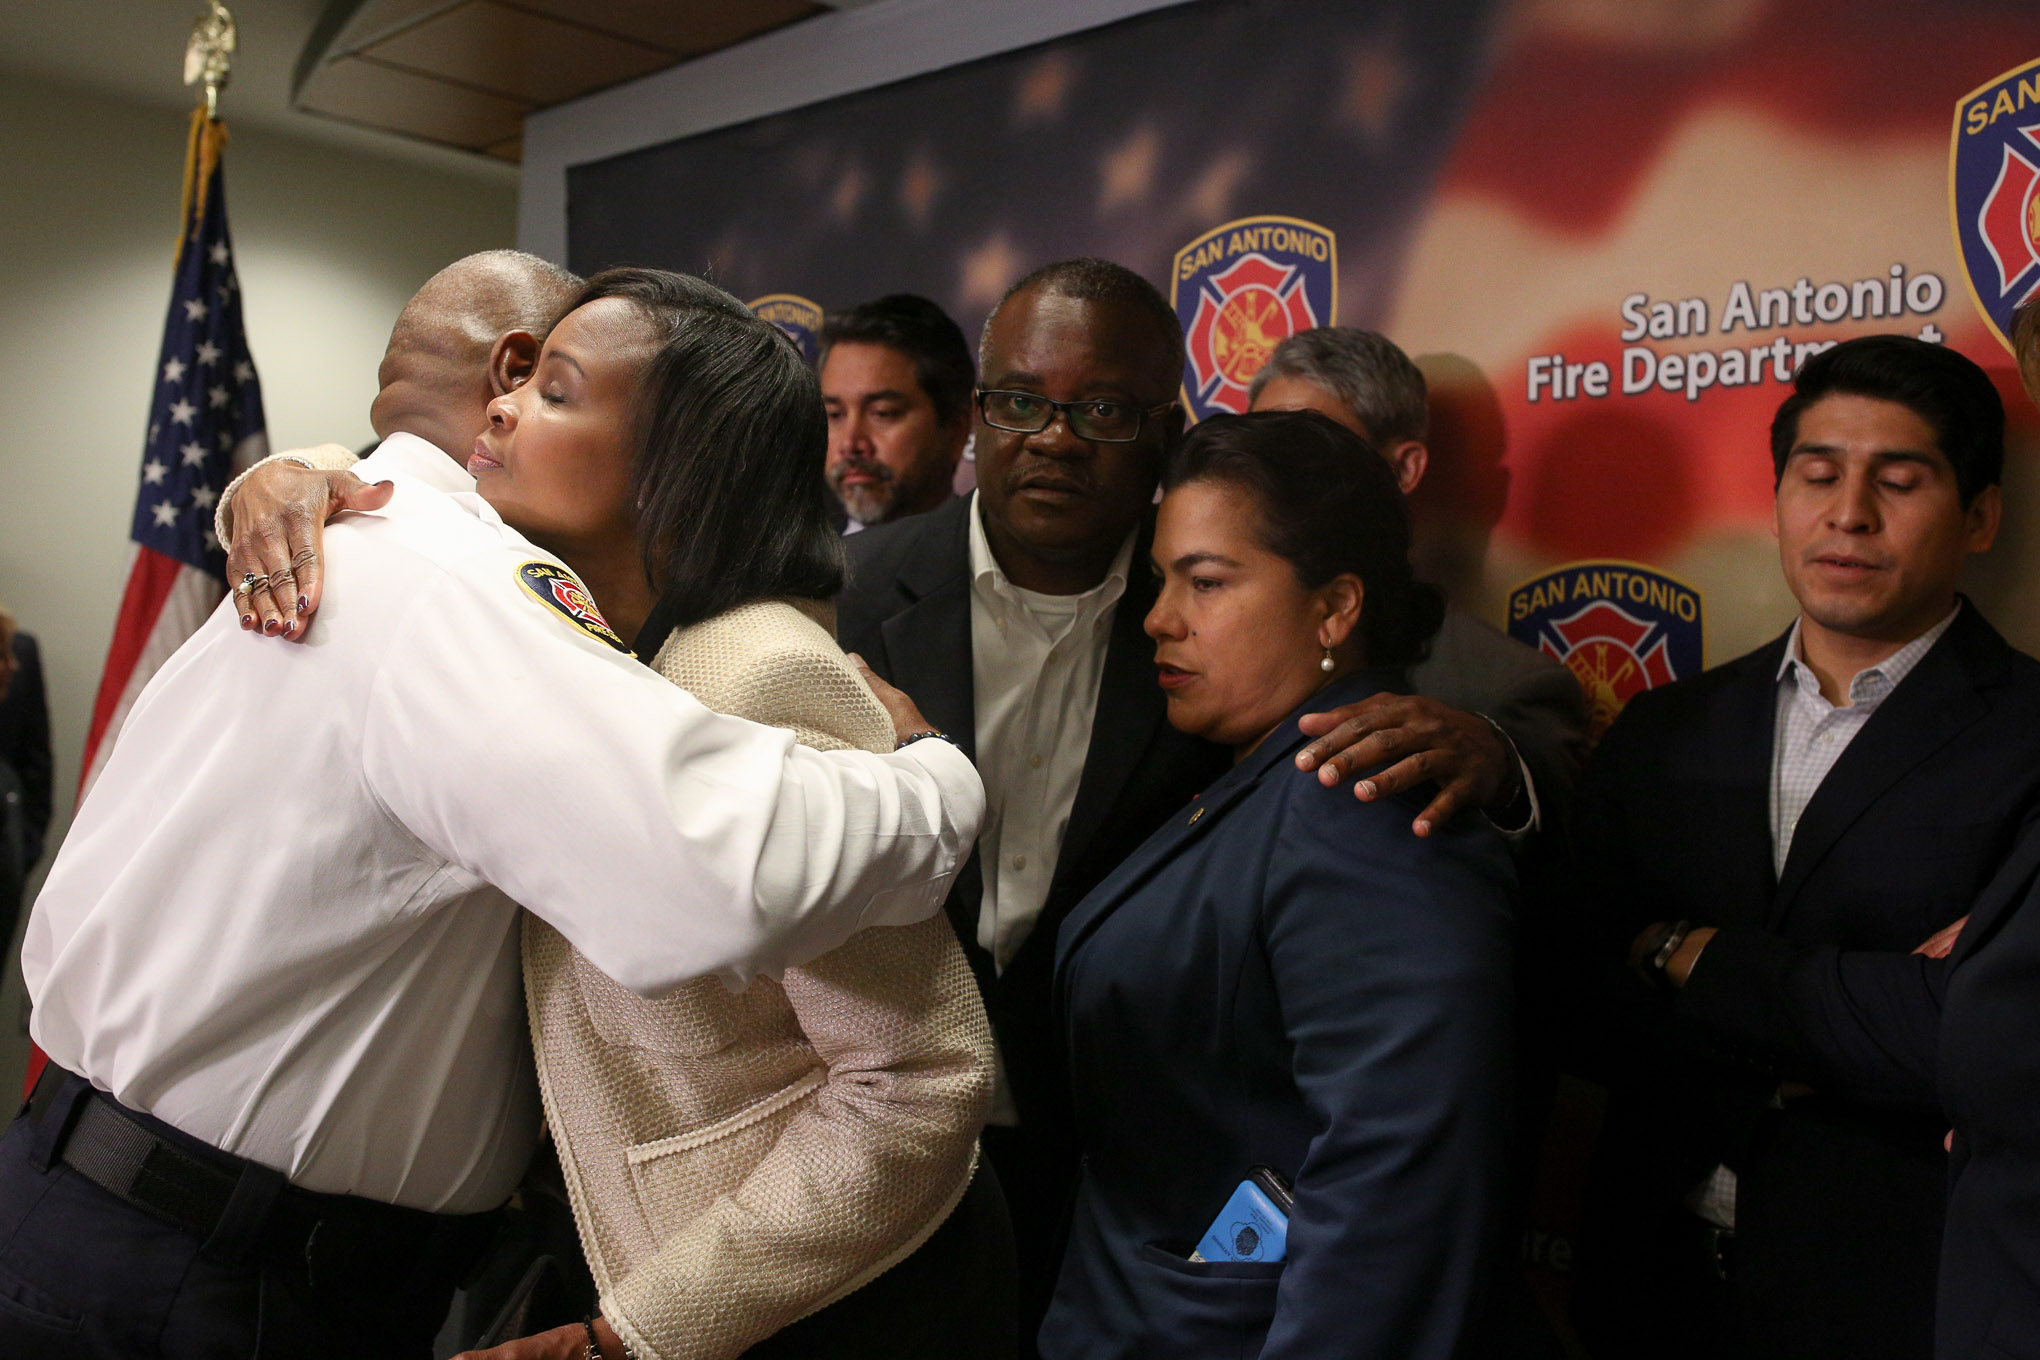 San Antonio Fire Department Chief Charles Hood embraces Mayor Ivy Taylor following a press briefing detailing the incident which killed firefighter Scott Deem of Fire Station 35.